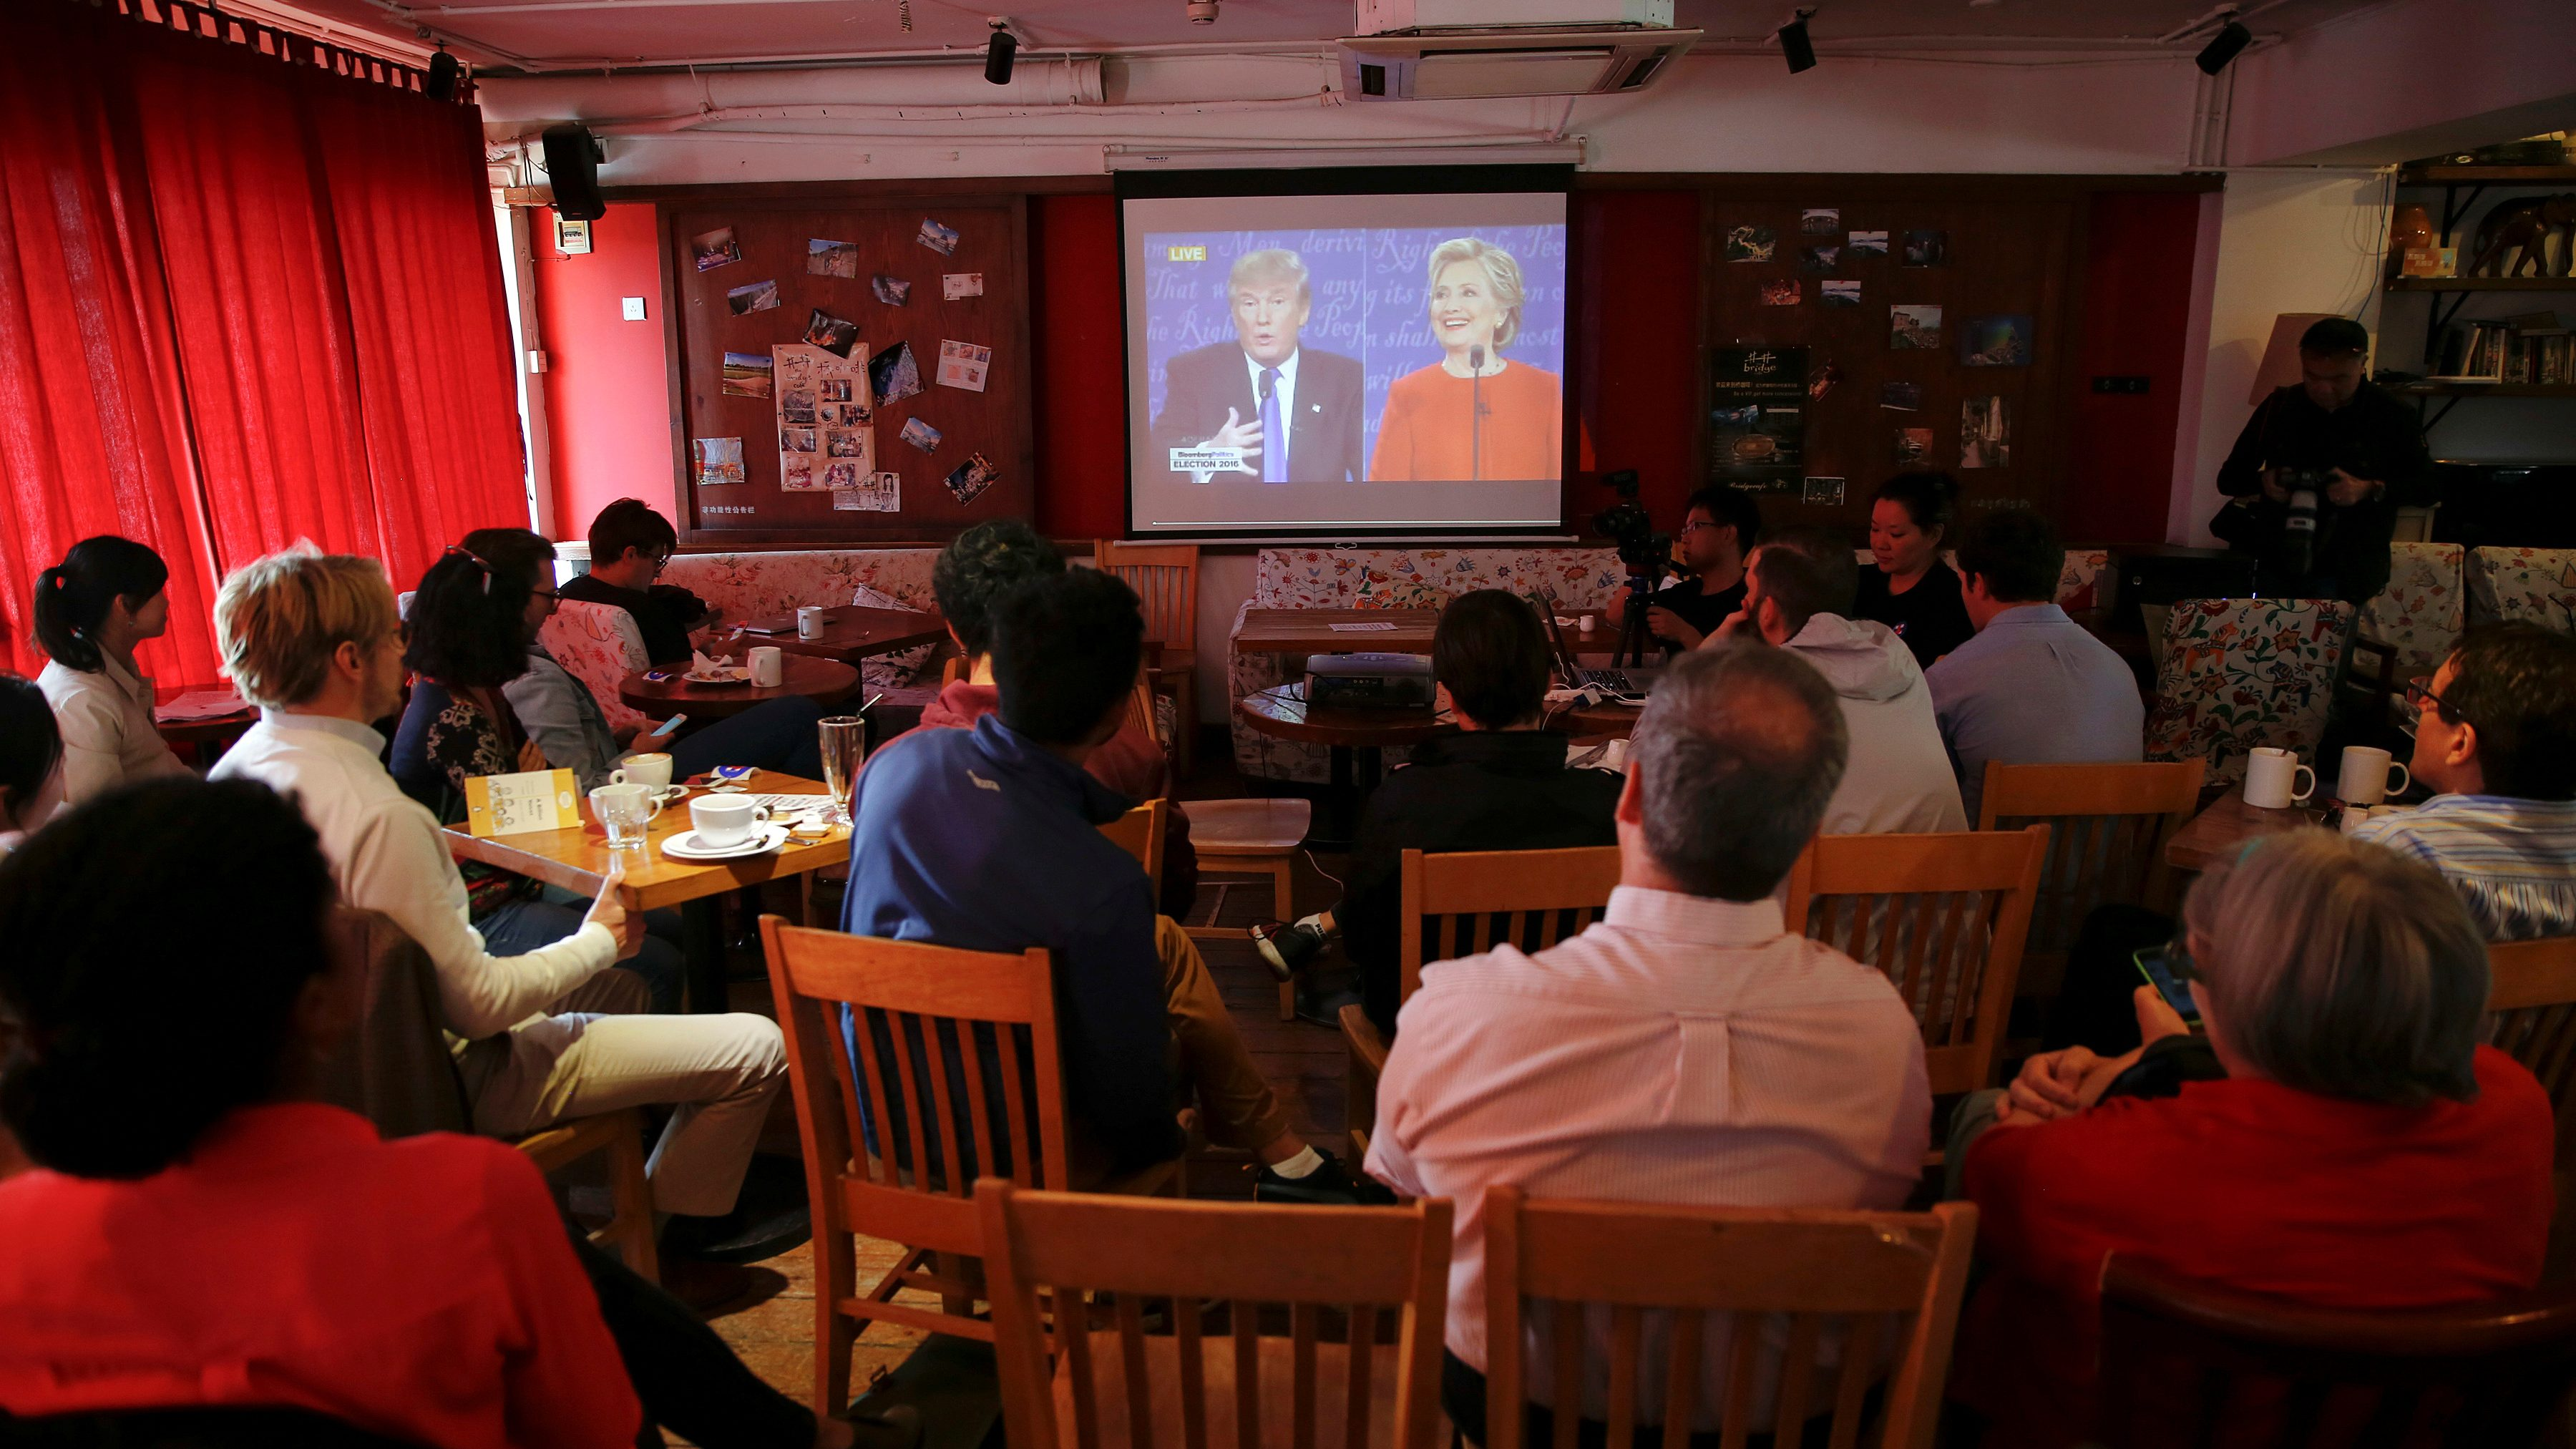 People watch a direct broadcast of the first U.S. presidential debate between Republican U.S. presidential nominee Donald Trump and Democratic U.S. presidential nominee Hillary Clinton at a cafe in Beijing